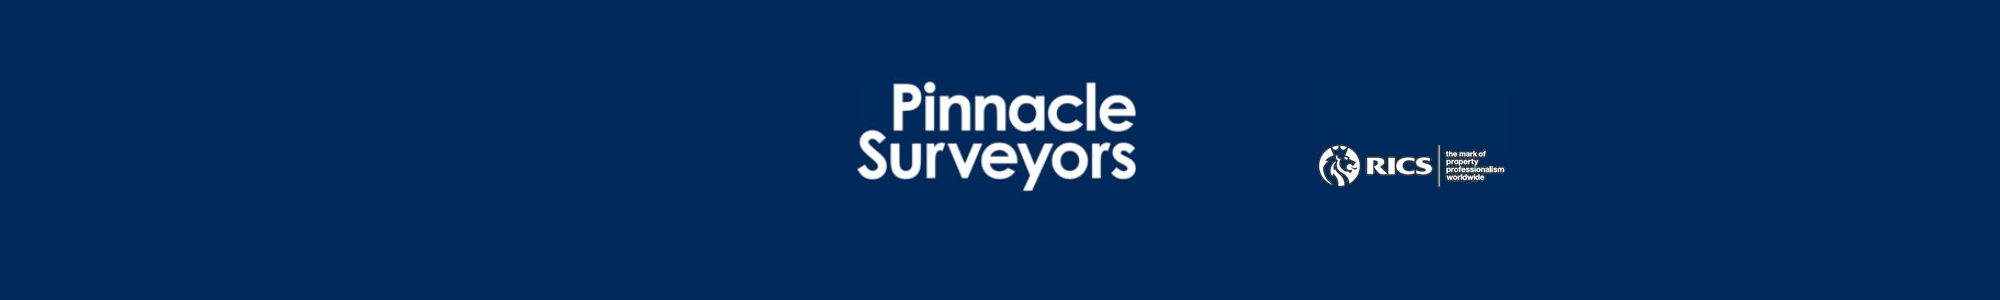 Pinnacle Surveyors